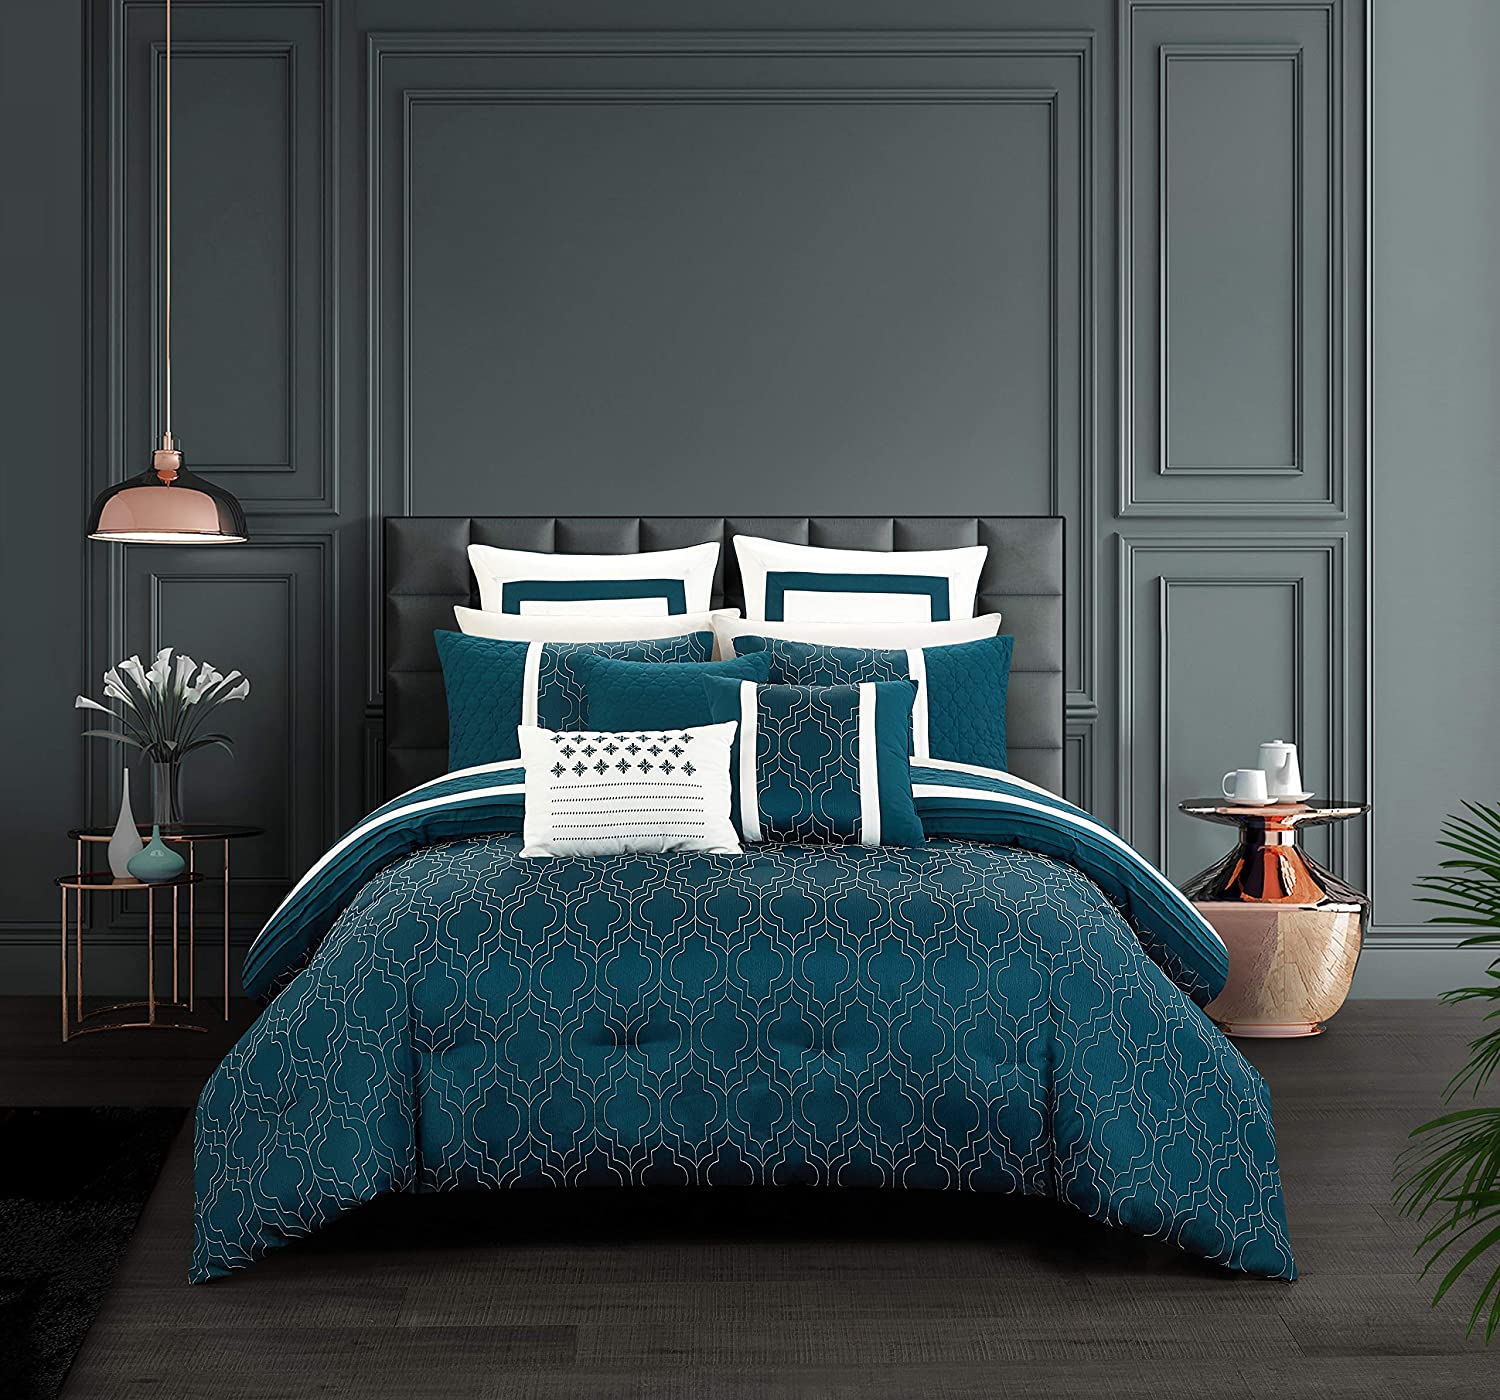 Chic Home Arlow 8 Piece Comforter Set Jacquard Geometric Quilted Pattern Design Bedding - Decorative Pillows Shams Included, King, Teal